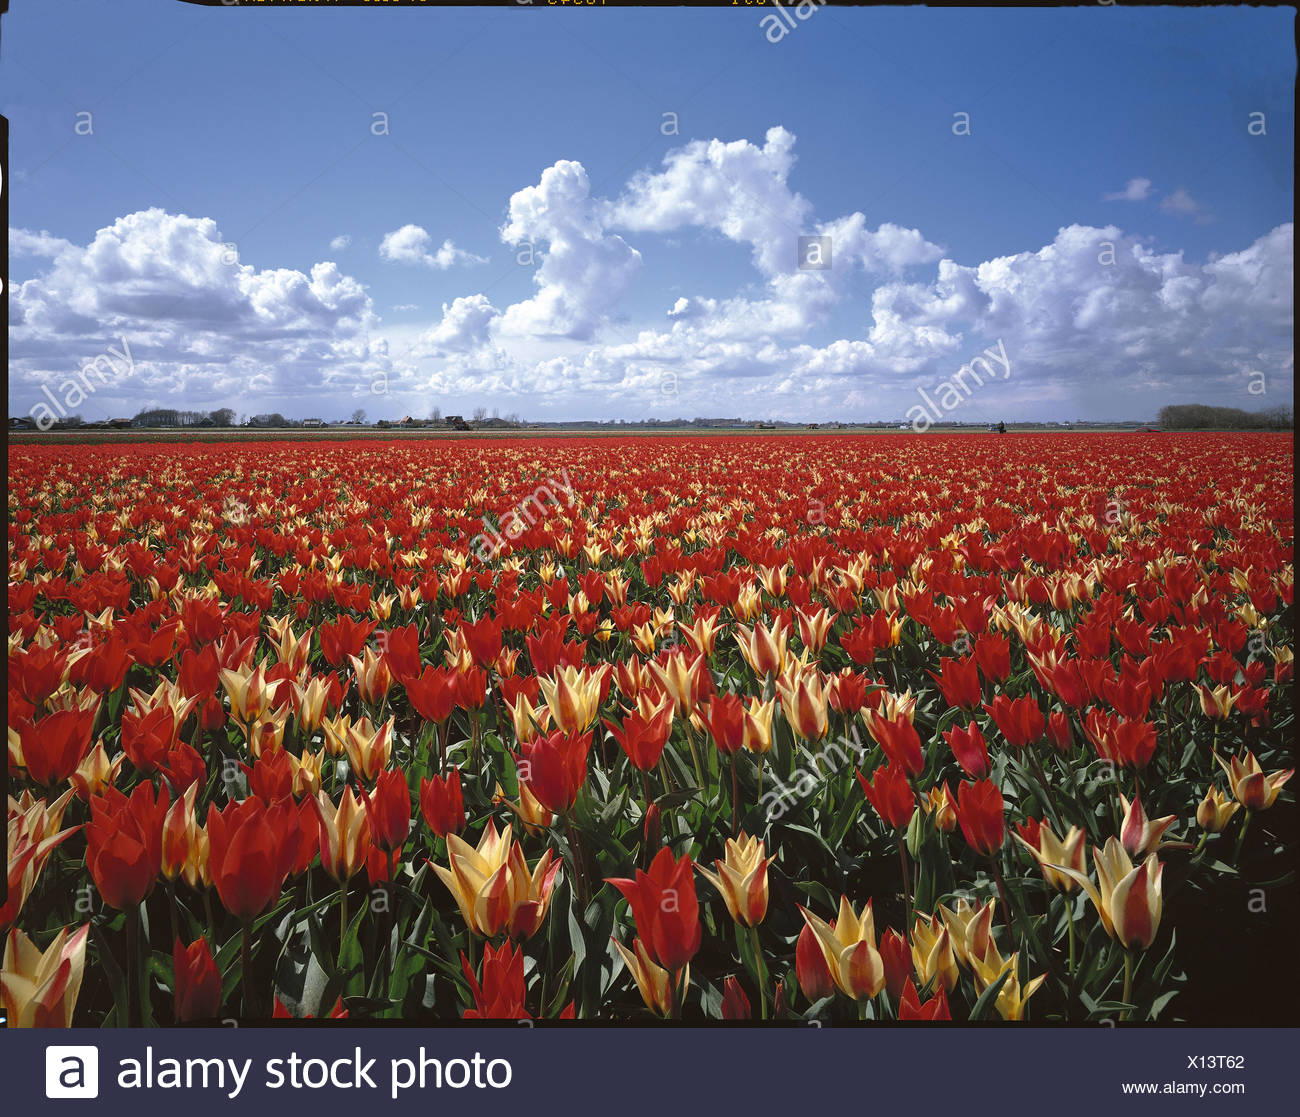 flowers flower field Egmond within field Holland scenery agriculture Netherlands tulips tulip field cloud - Stock Image